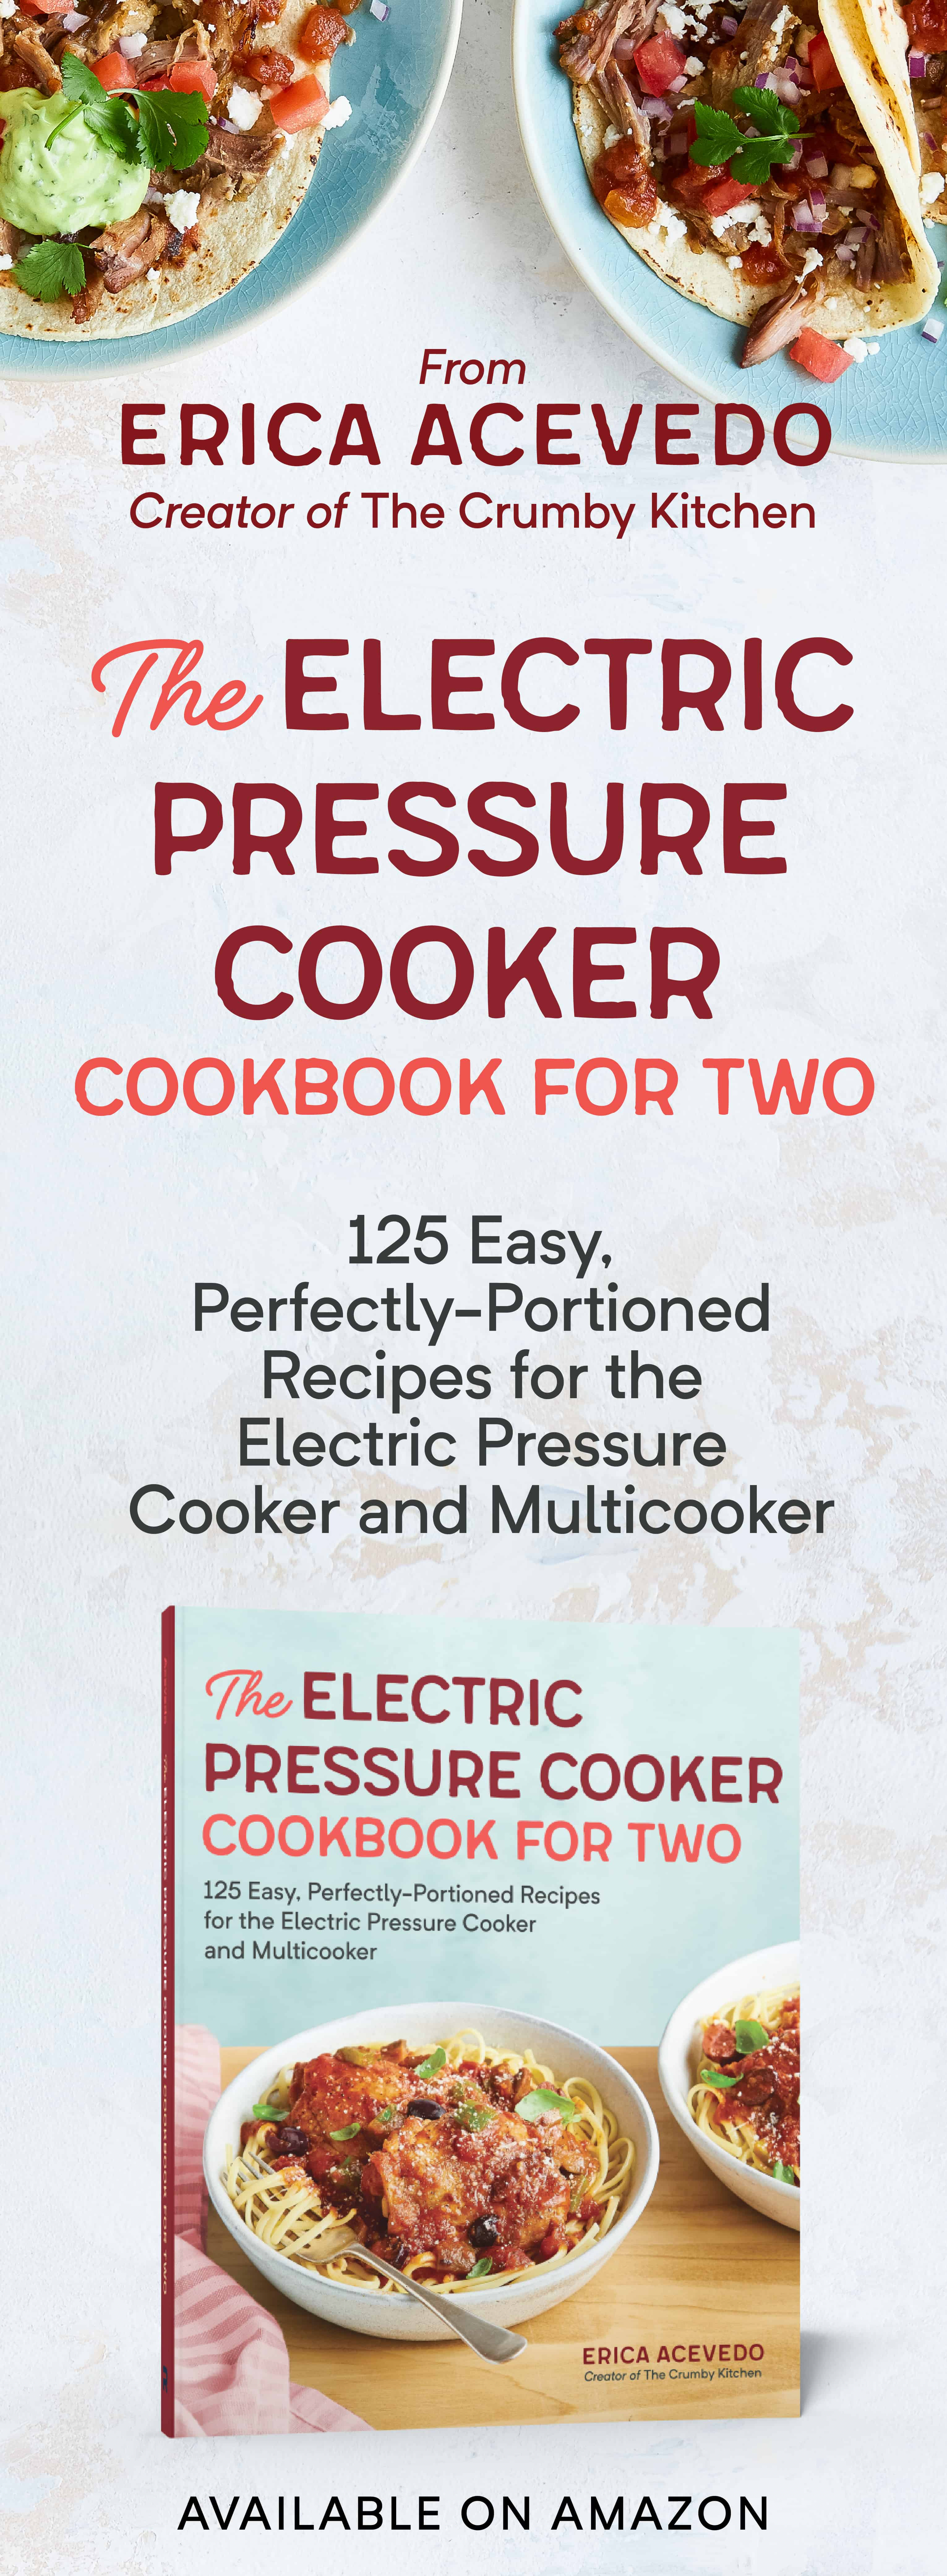 Perfect for anyone who needs recipes in smaller quantities, this electric pressure cooker cookbook serves family favorite meals without wasting food or leaving your fridge full of leftovers. With over 100 quick and easy recipes, plus an overview on how to get the most out of your electric pressure cooker, The Electric Pressure Cooker Cookbook For Two keeps taste buds happy and Tupperware empty and takes the guesswork out of cutting recipes in half, helping you create full meals for both of you!